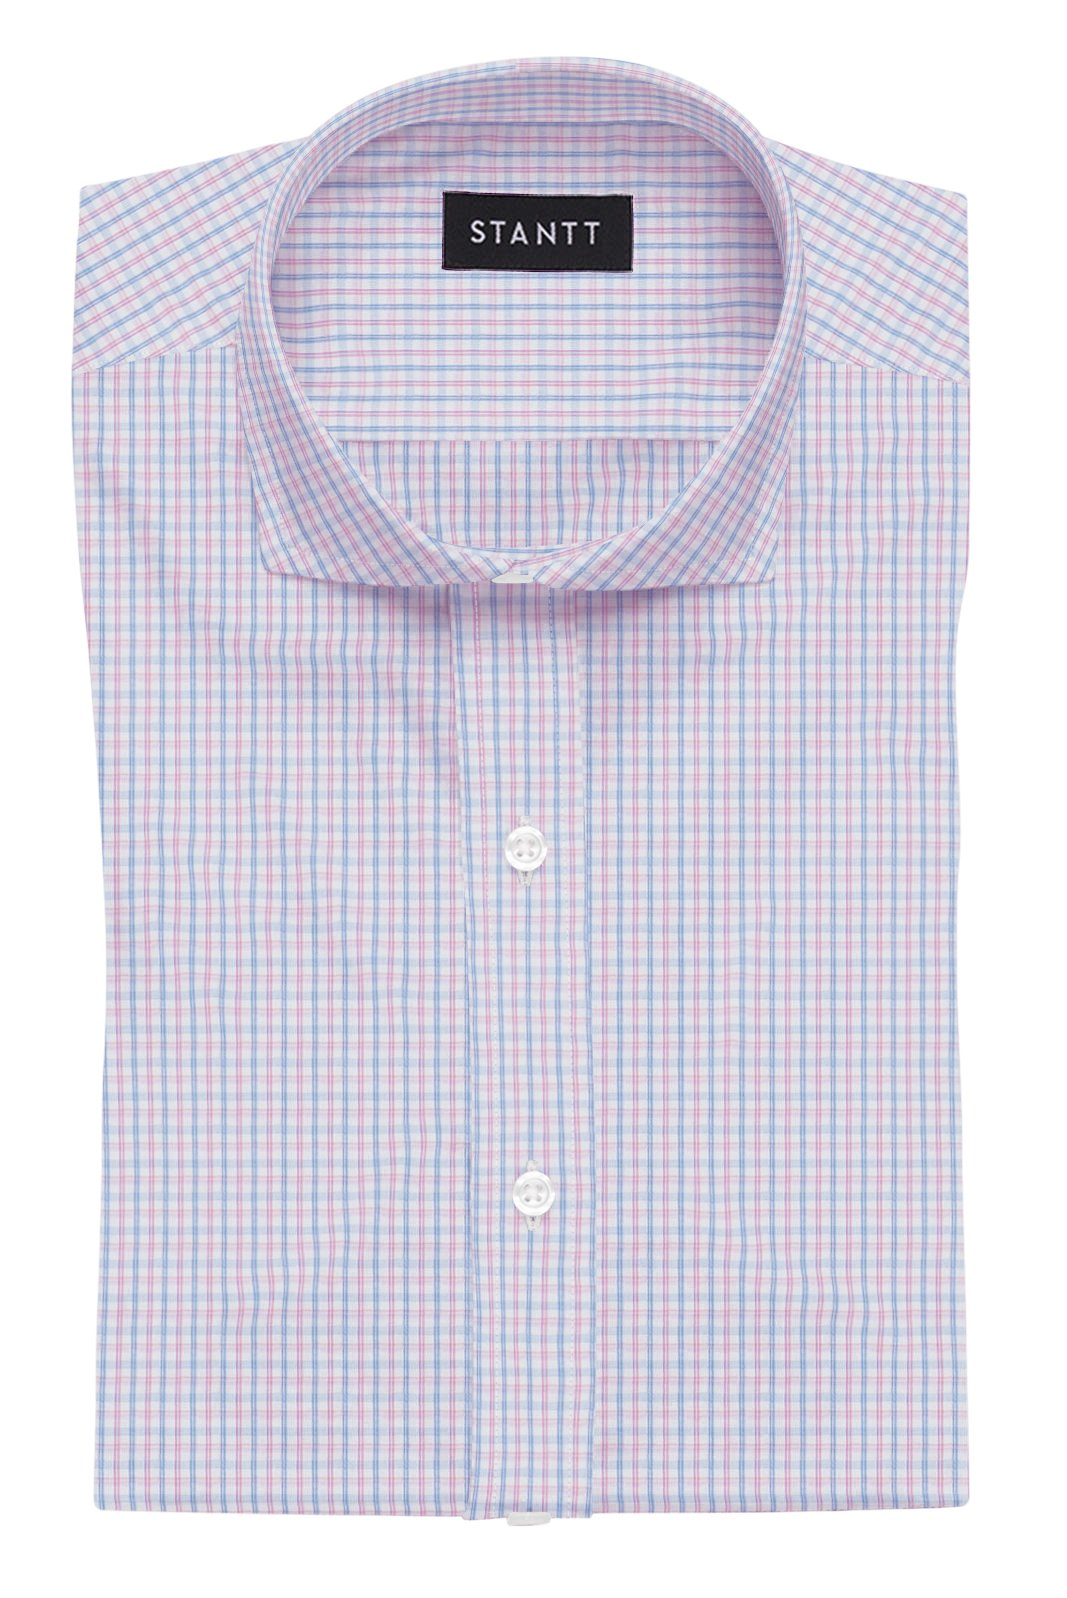 Wrinkle-Resistant Light Blue and Pink Bordered Tattersall: Cutaway Collar, French Cuff